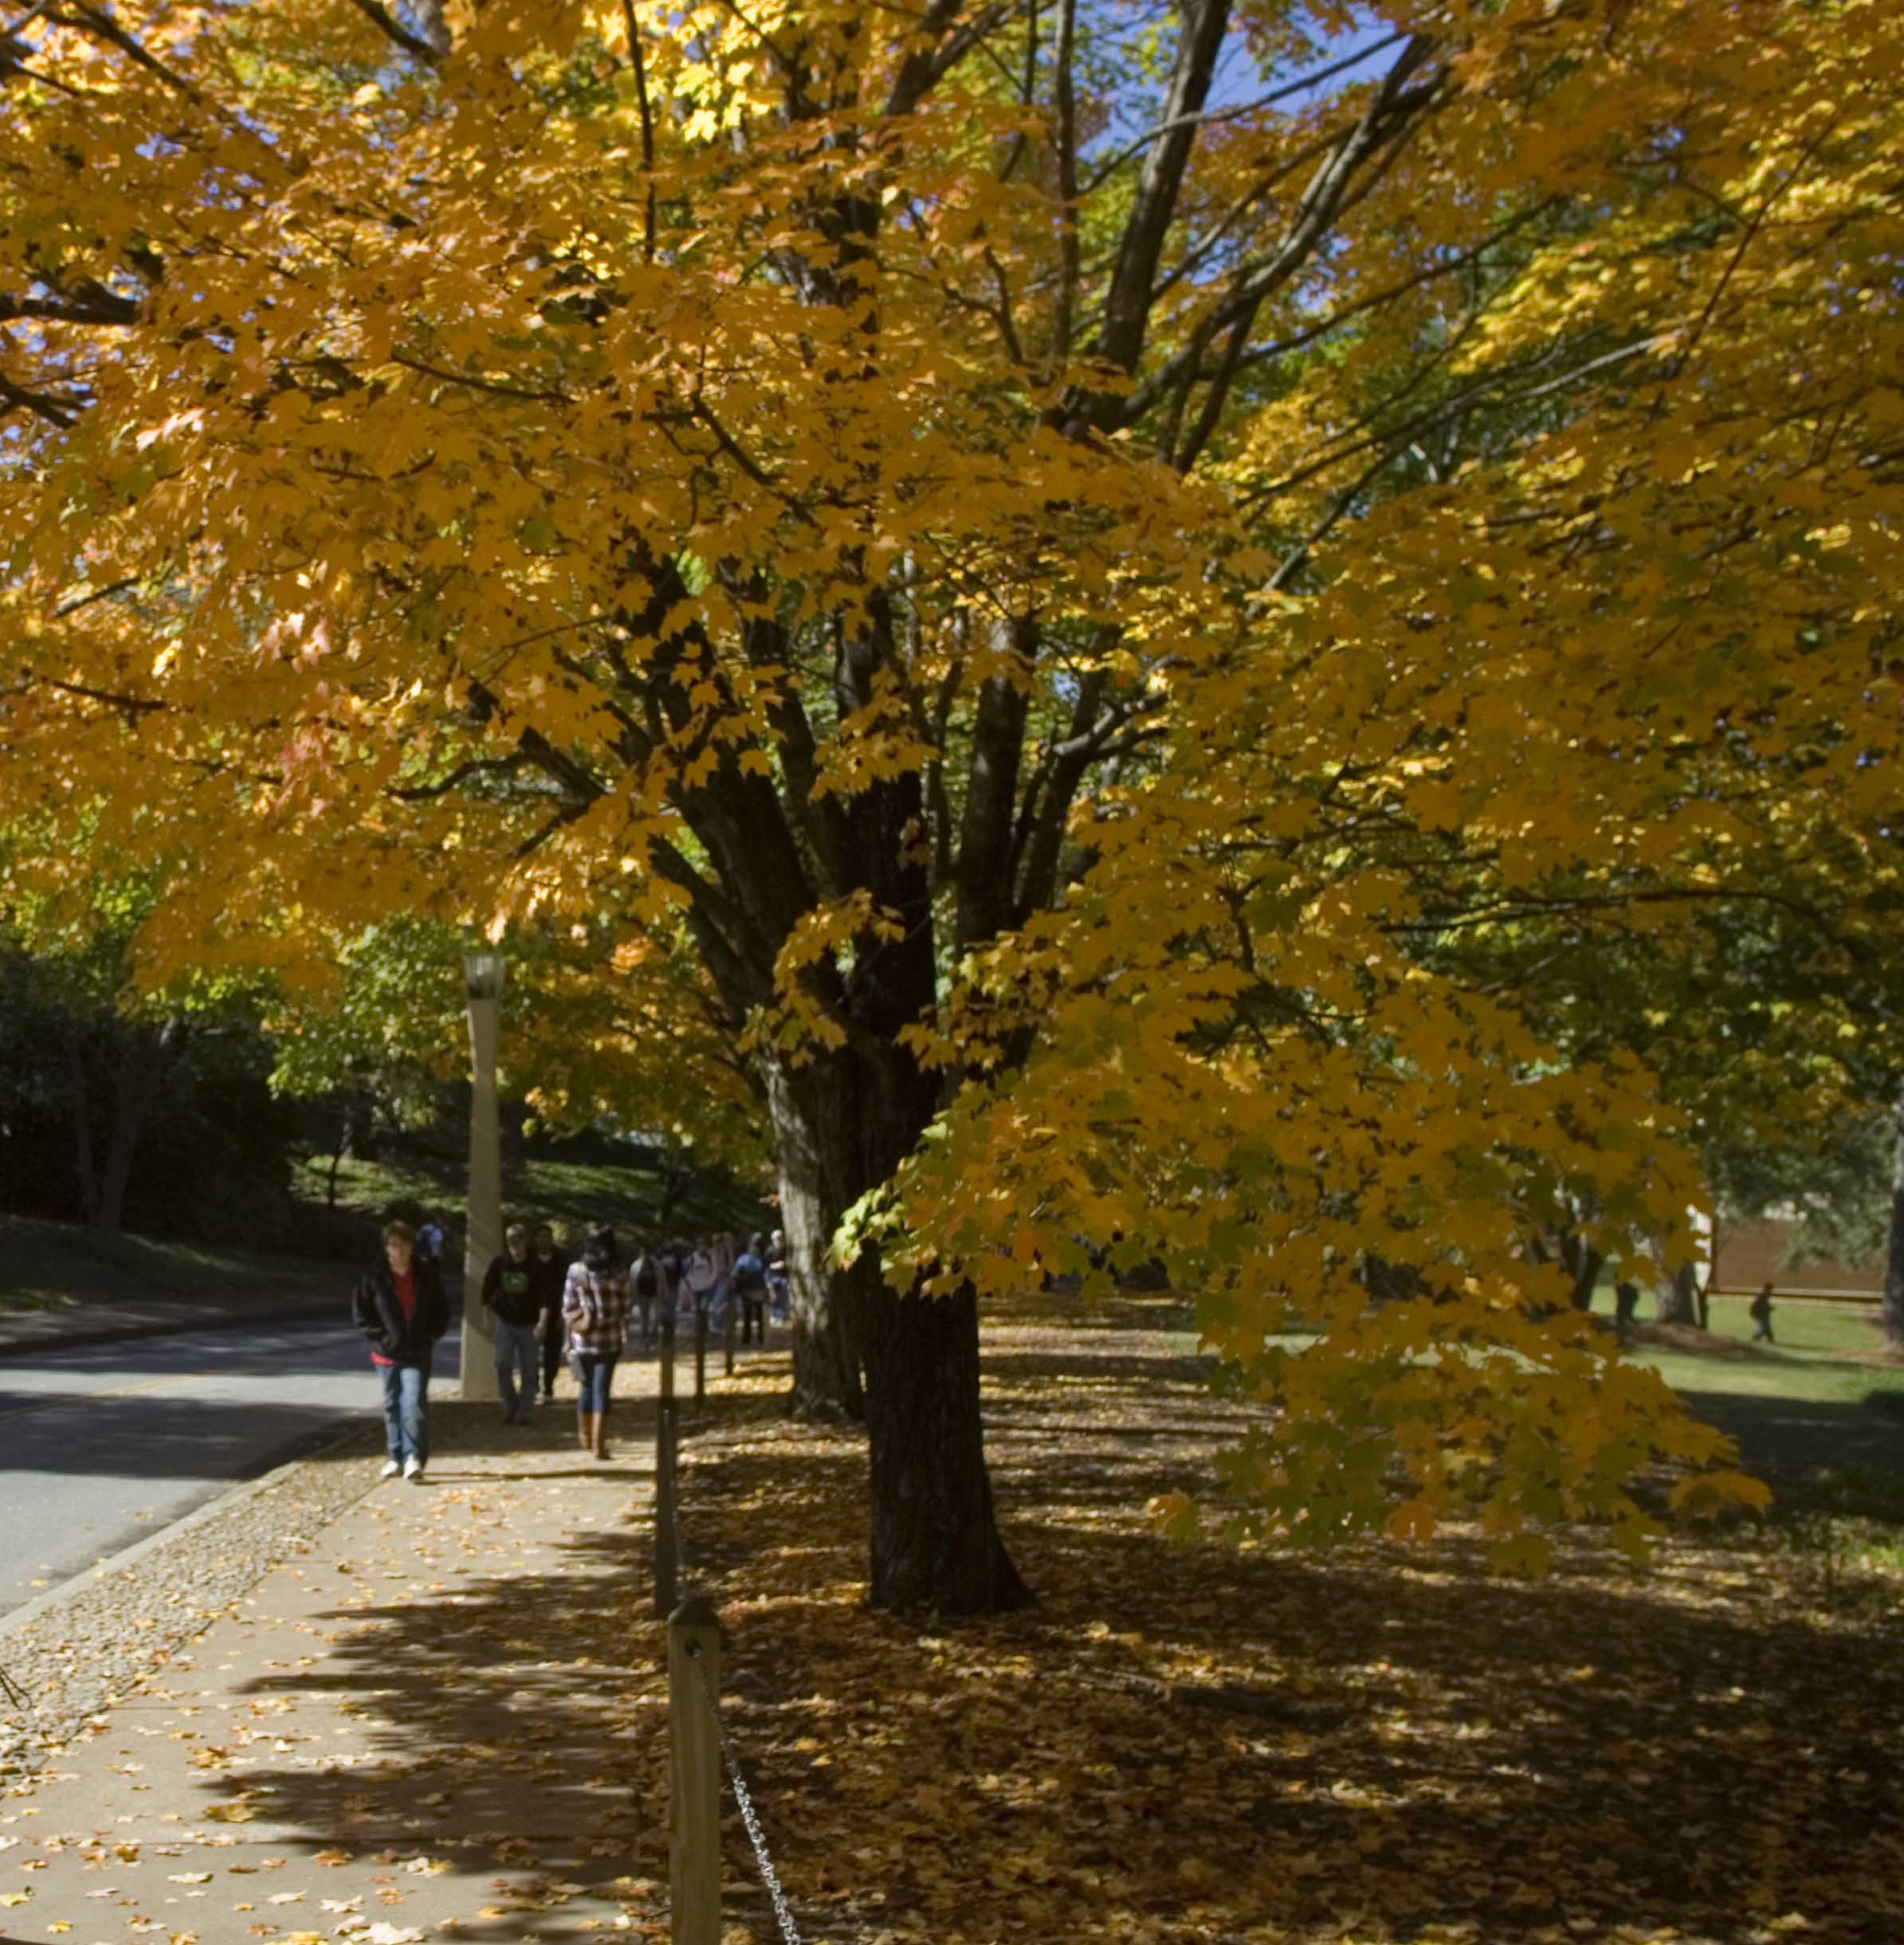 A University of Georgia student walks along Cedar Street under a canopy of bright yellow. The UGA Arboretum Committee is challenging students to take a picture of the campus trees that they find most memorable.